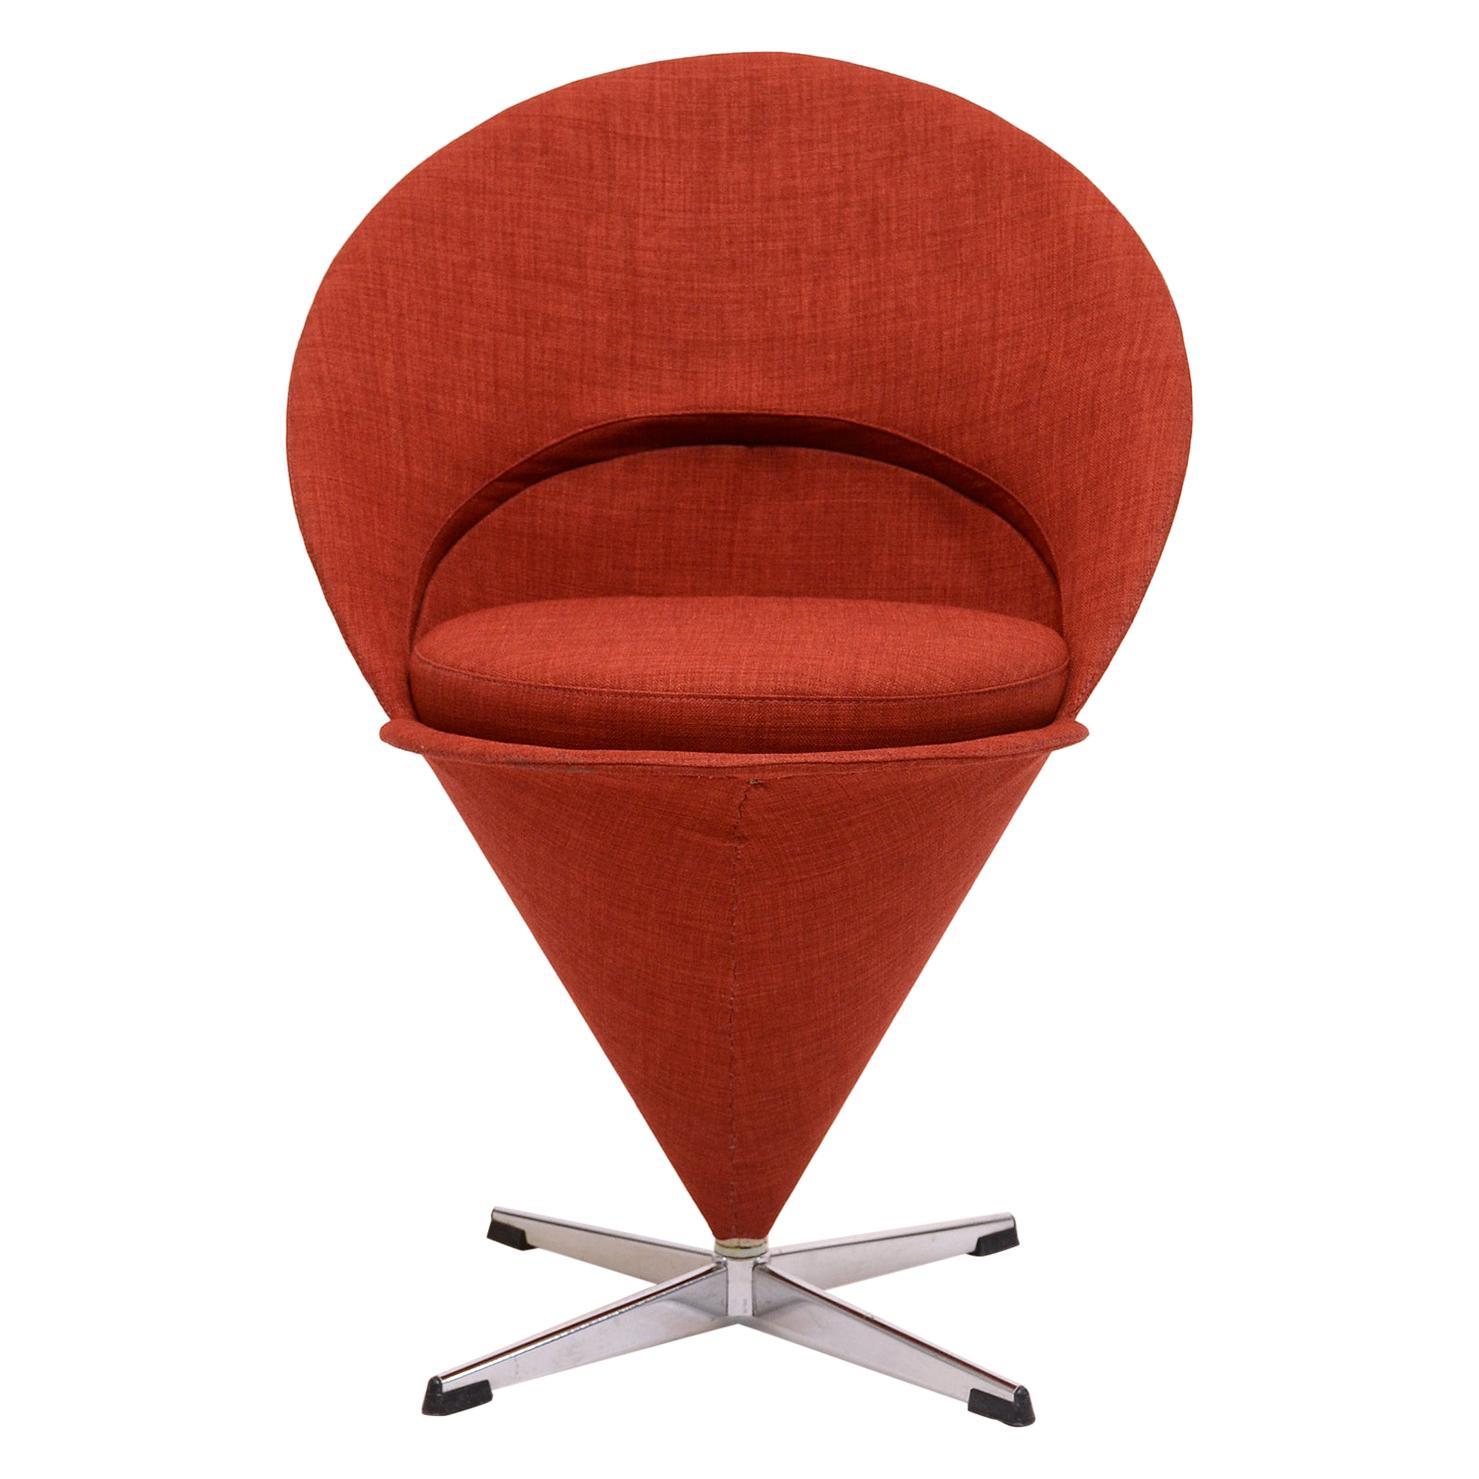 Cone Chair By Verner Panton For Sale At 1stdibs